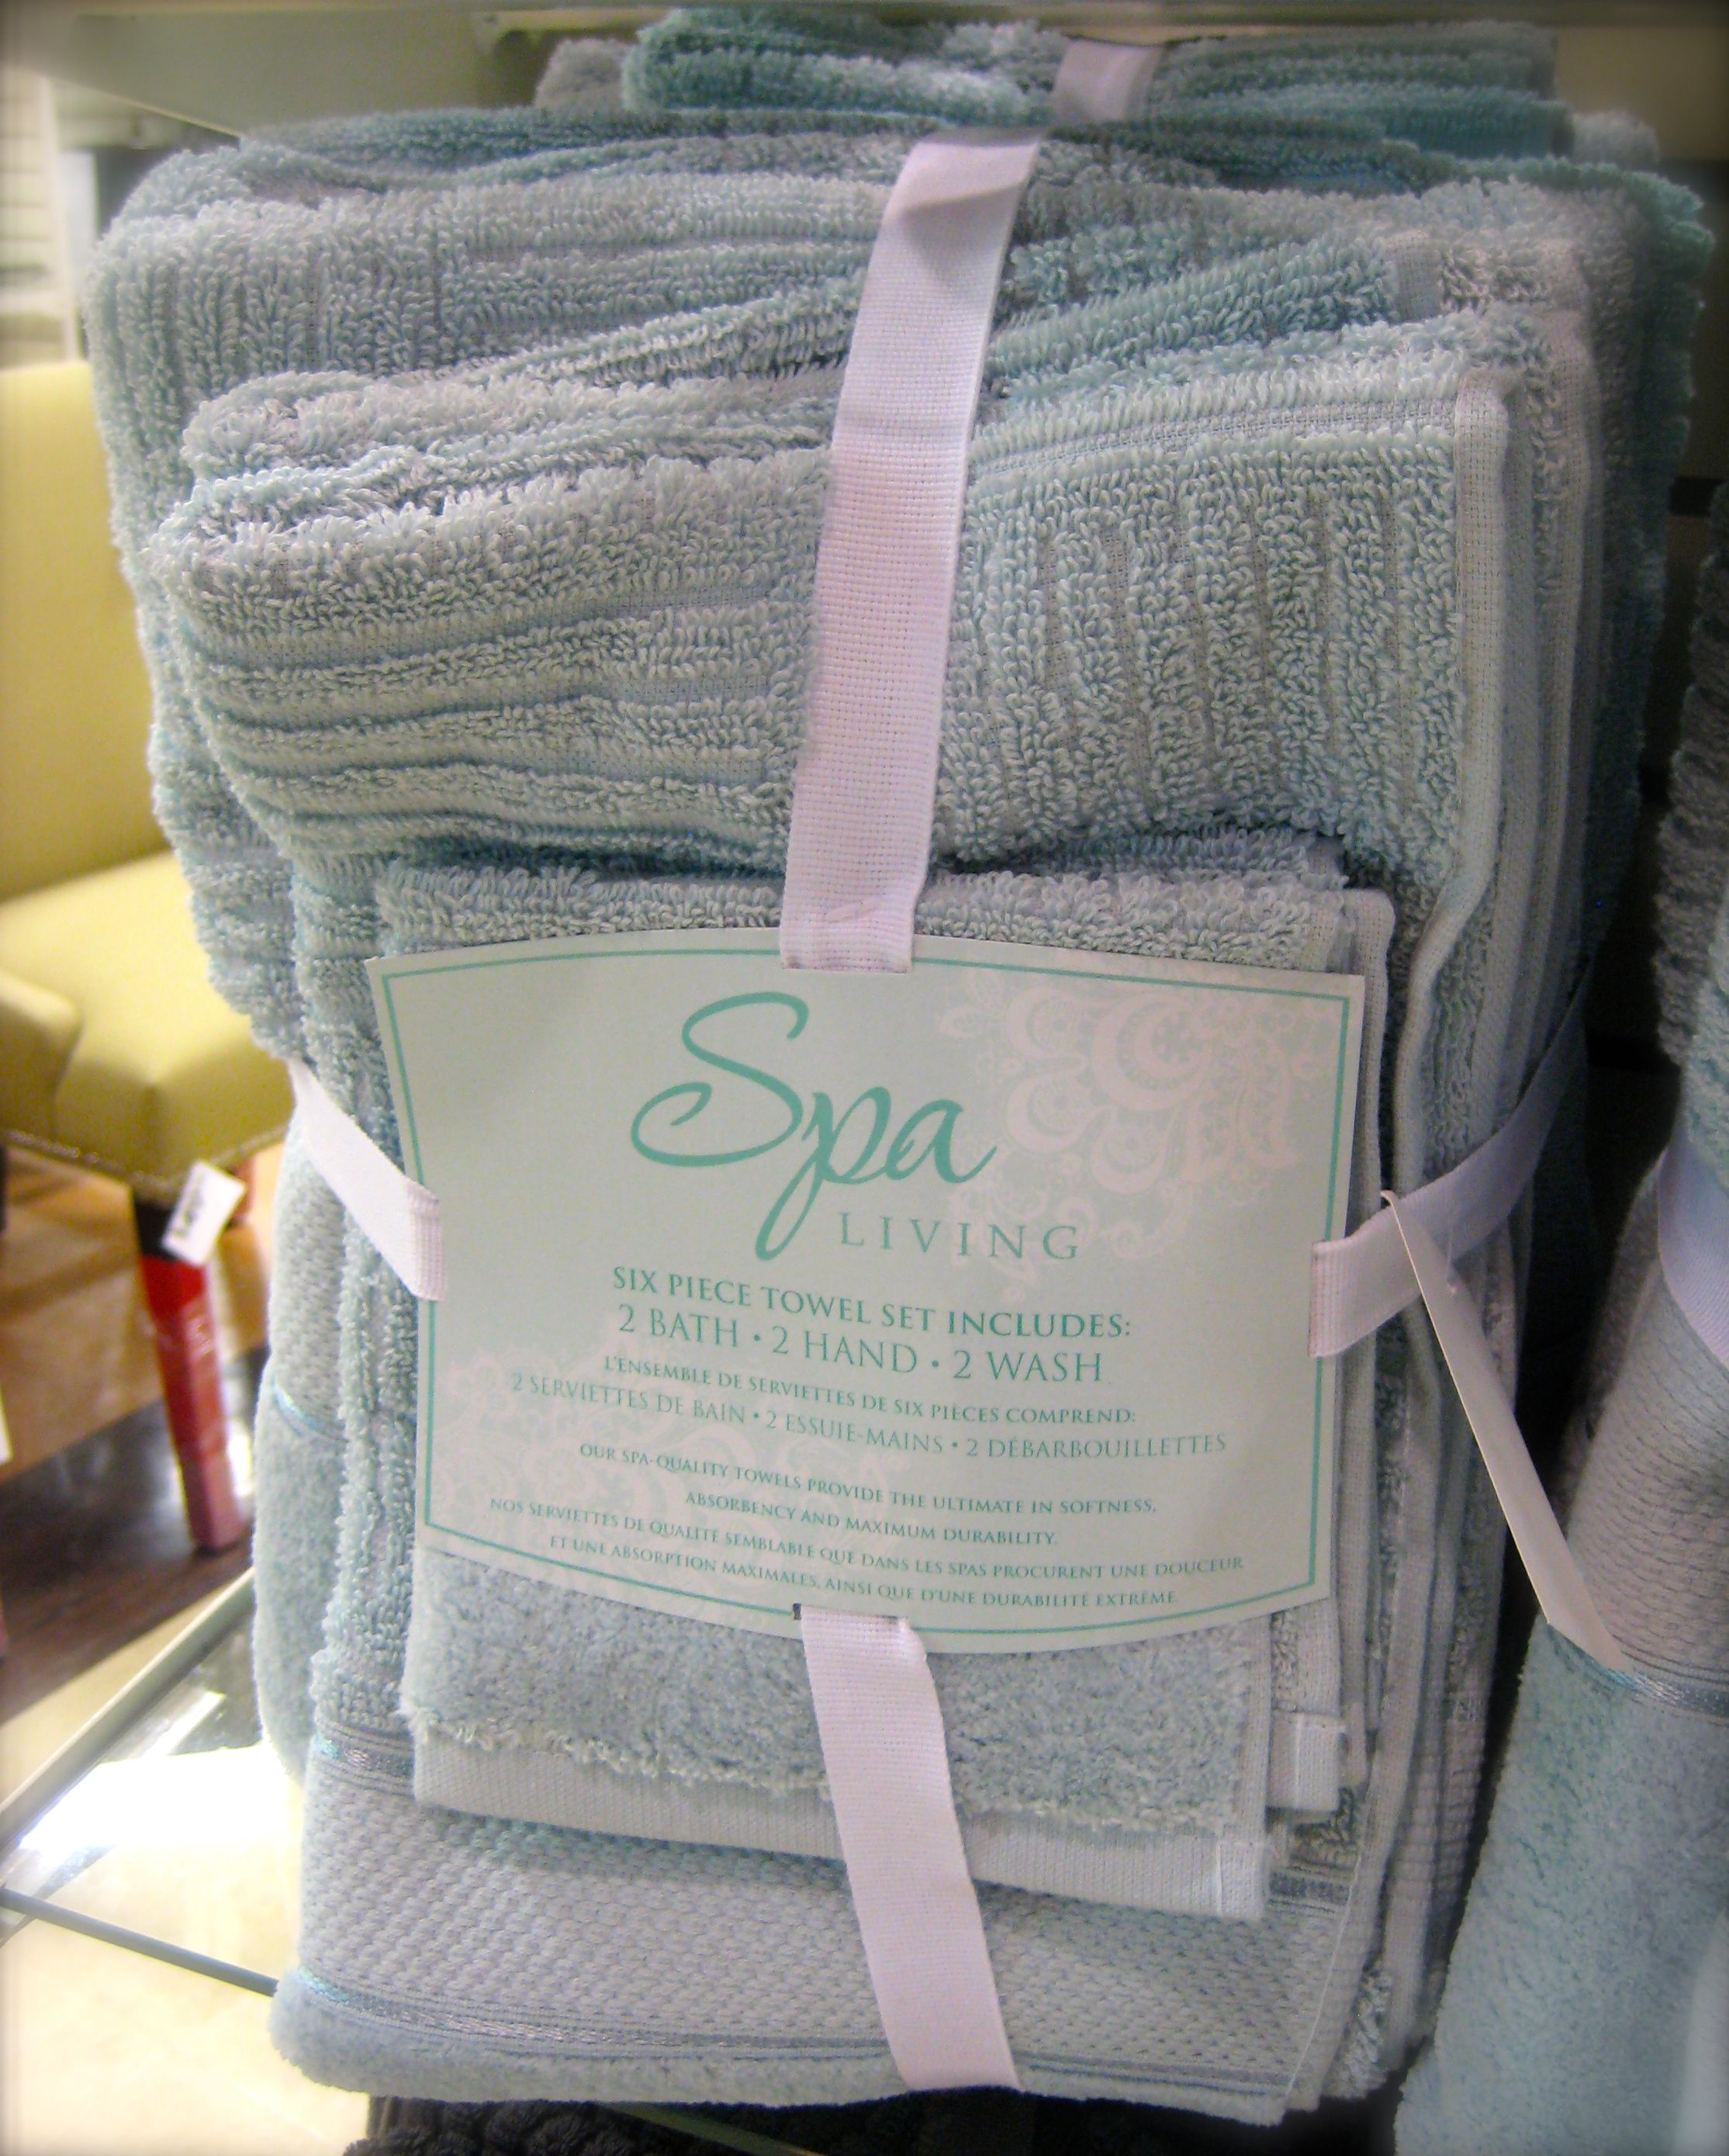 #Spring Trend Alert Spa Towel Set $2999 At Homesense (Seen